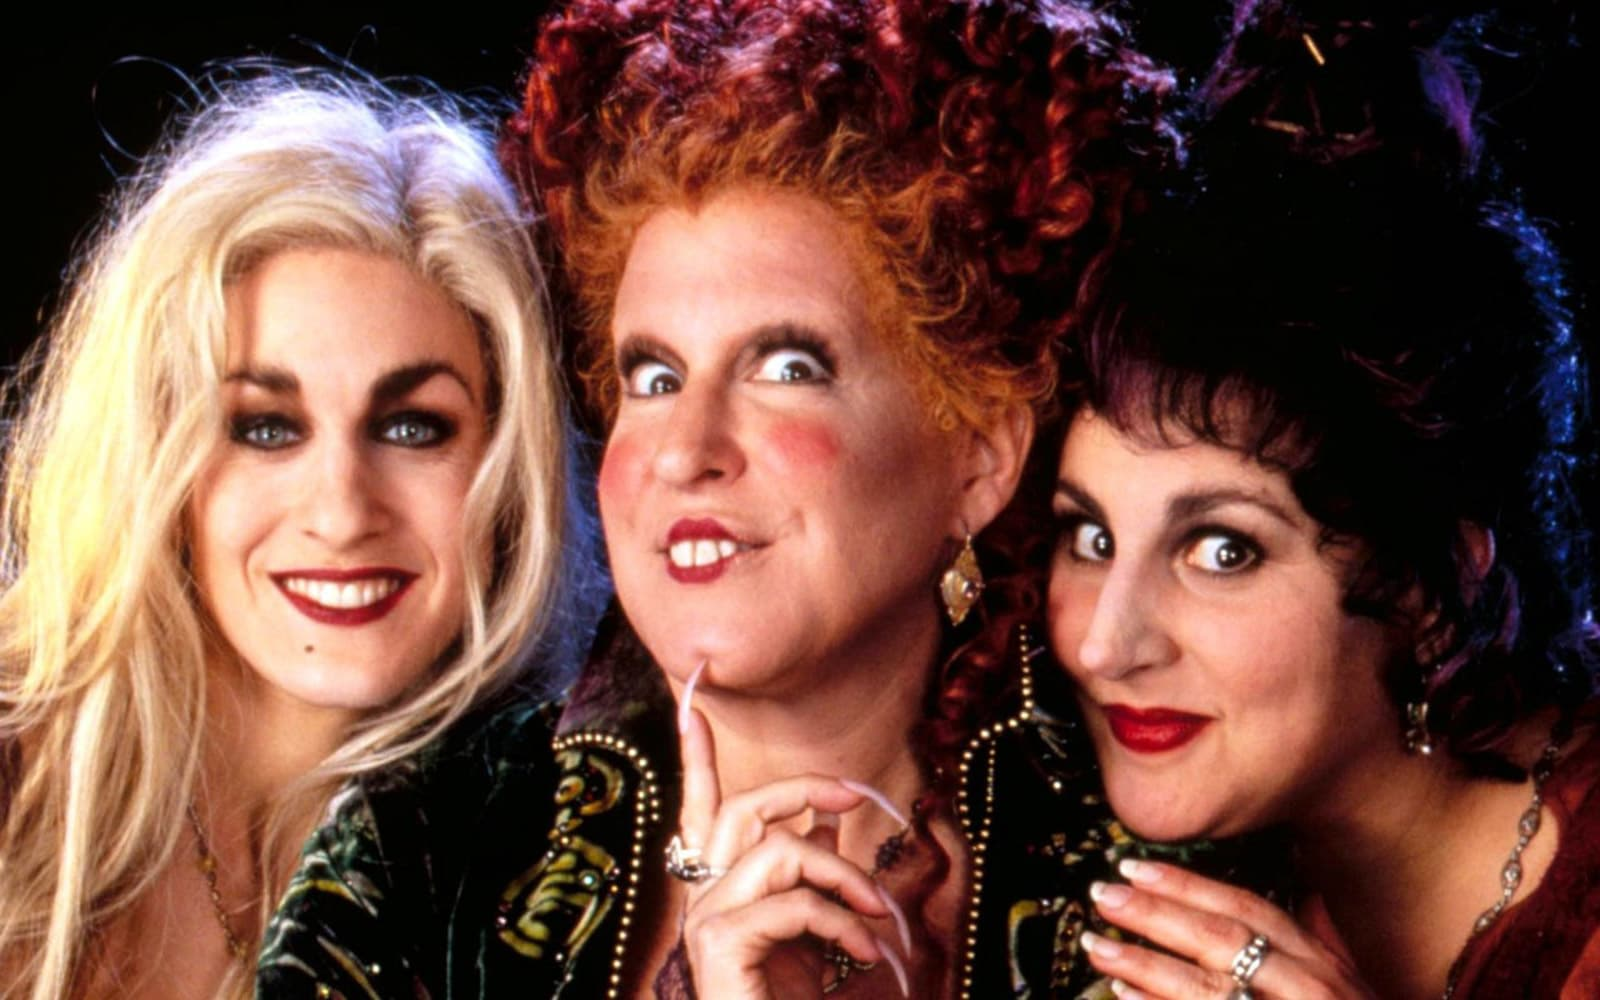 Link to more information around Hocus Pocus sequel on Disney+